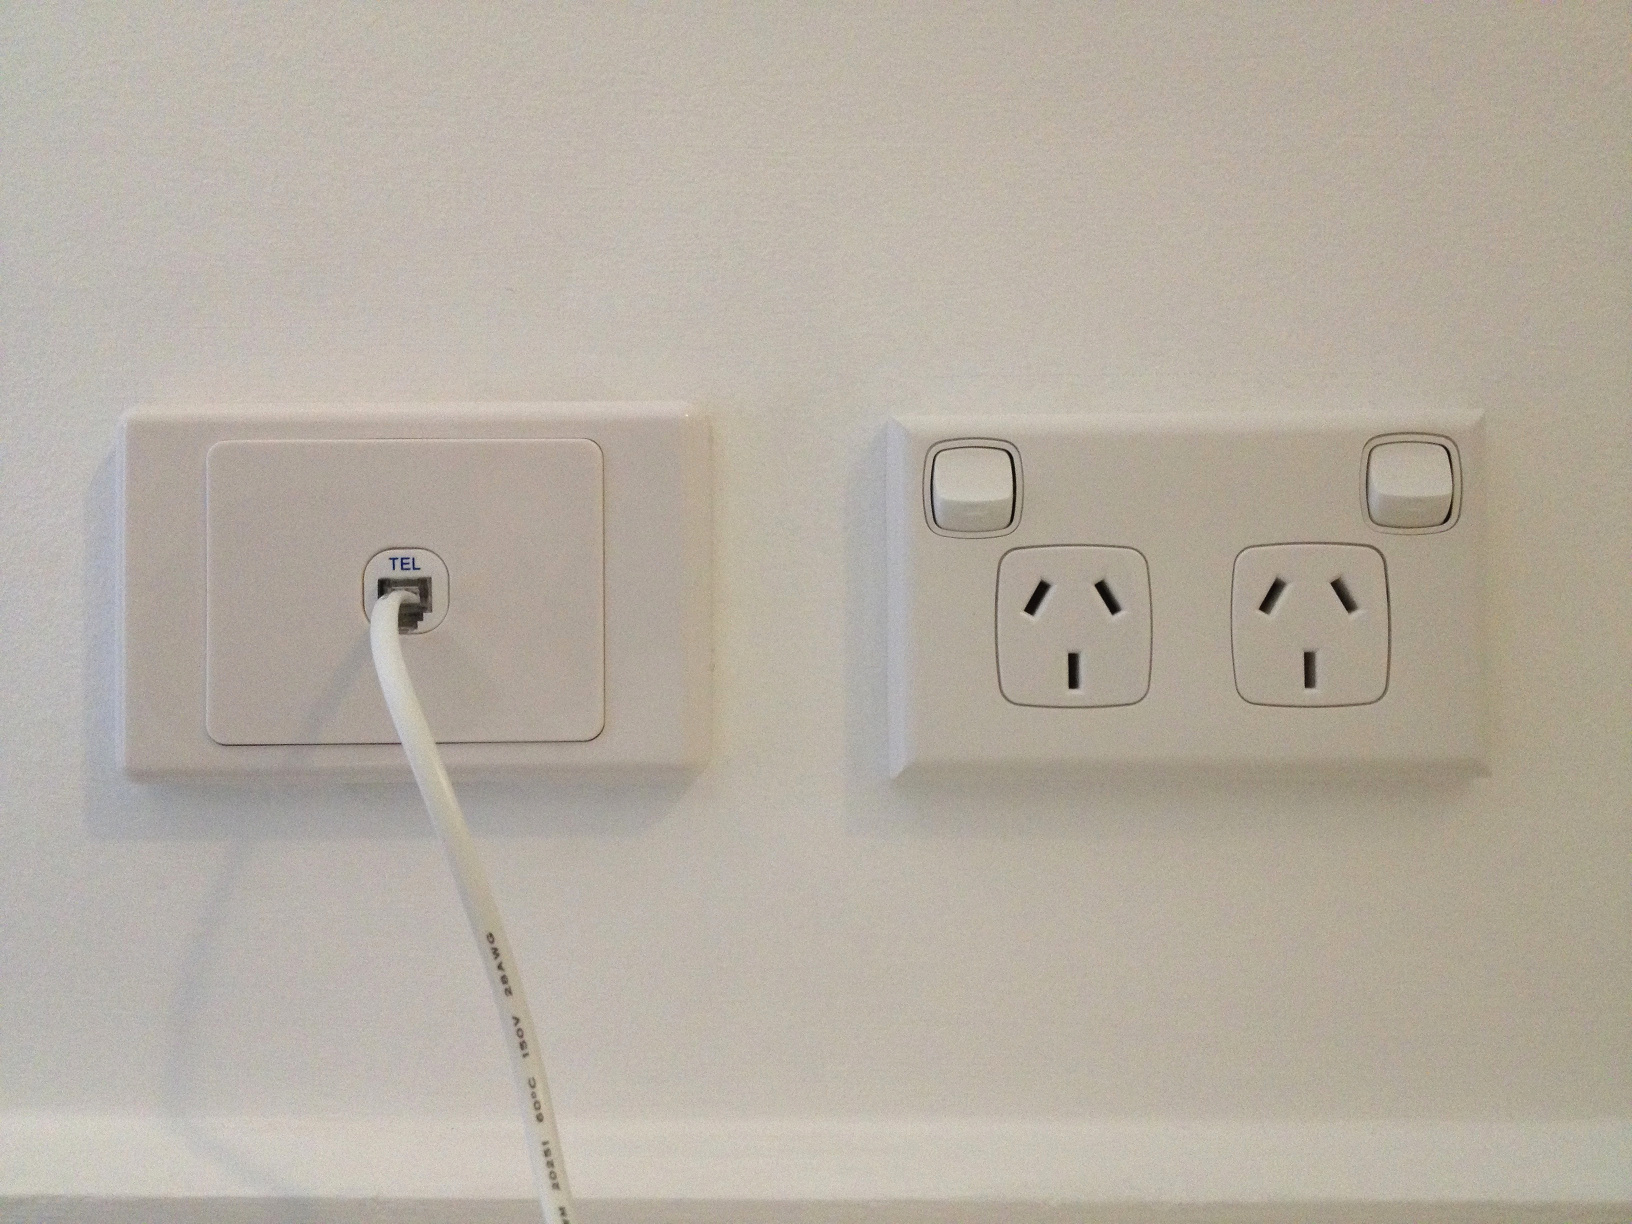 small resolution of 610w telephone wall socket wiring schema wiring diagram rj11 wall socket wiring diagram australia rj11 wall socket wiring diagram